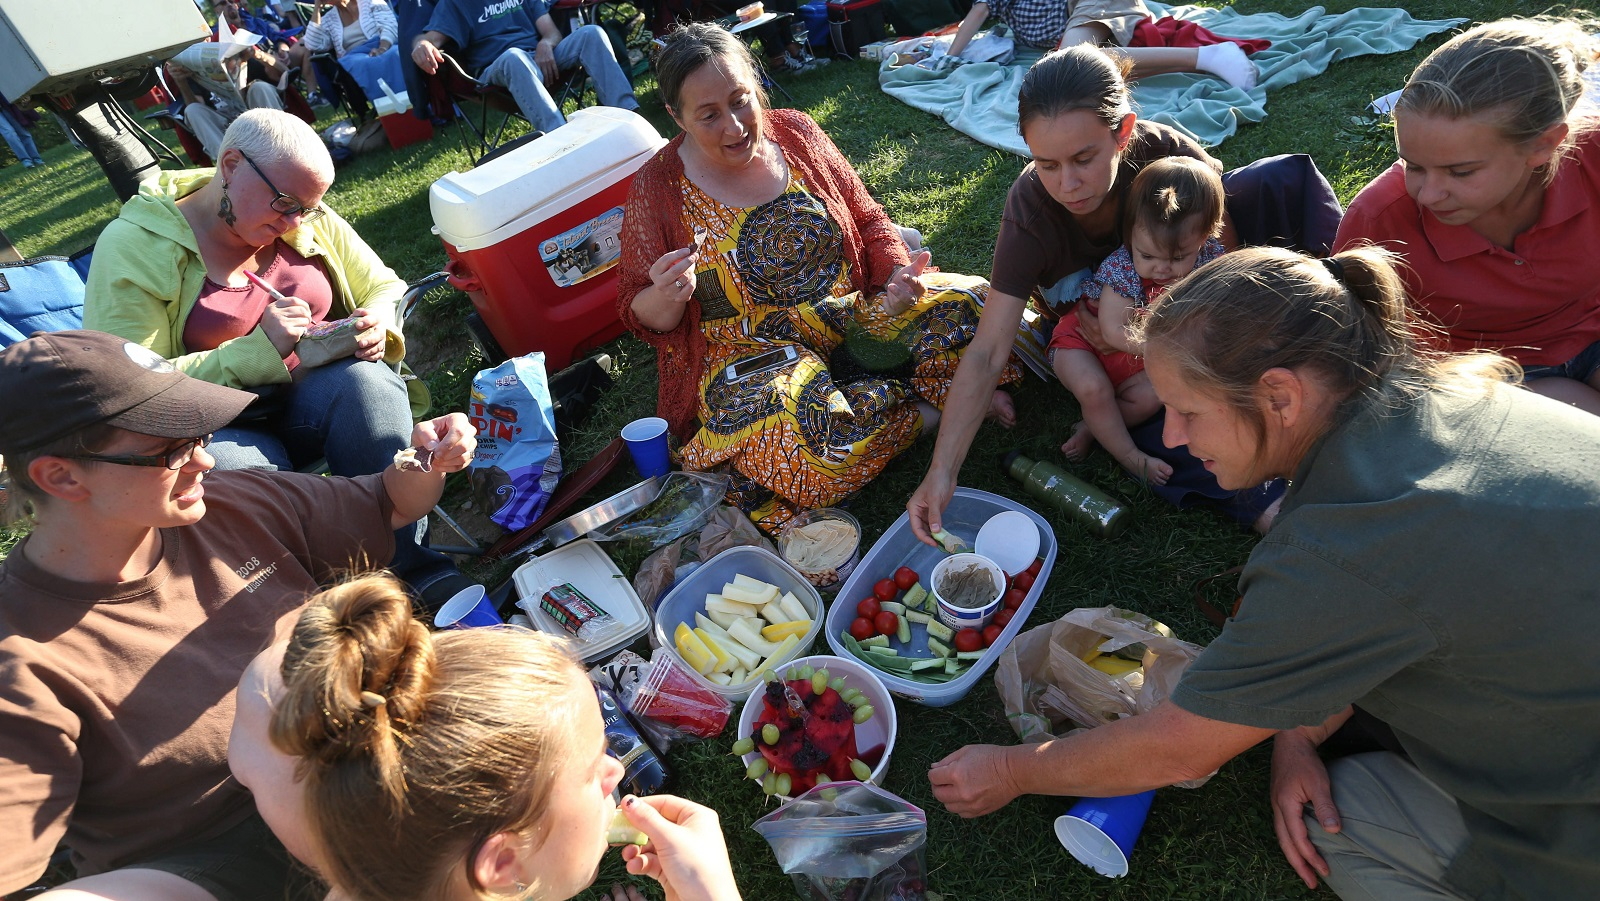 Part of the experience of Shakespeare in the Park at Delaware Park is bringing a picnic to enjoy before and during the performance. Clockwise from bottom left are Kerturah Stevens, Vicki Barr, Kim Zittel, Bonnie Barr, Alex Ash with daughter Hazel, 1, Jerusha Stevens and Janice Stevens, who is celebrating her birthday.  (Sharon Cantillon/Buffalo News)